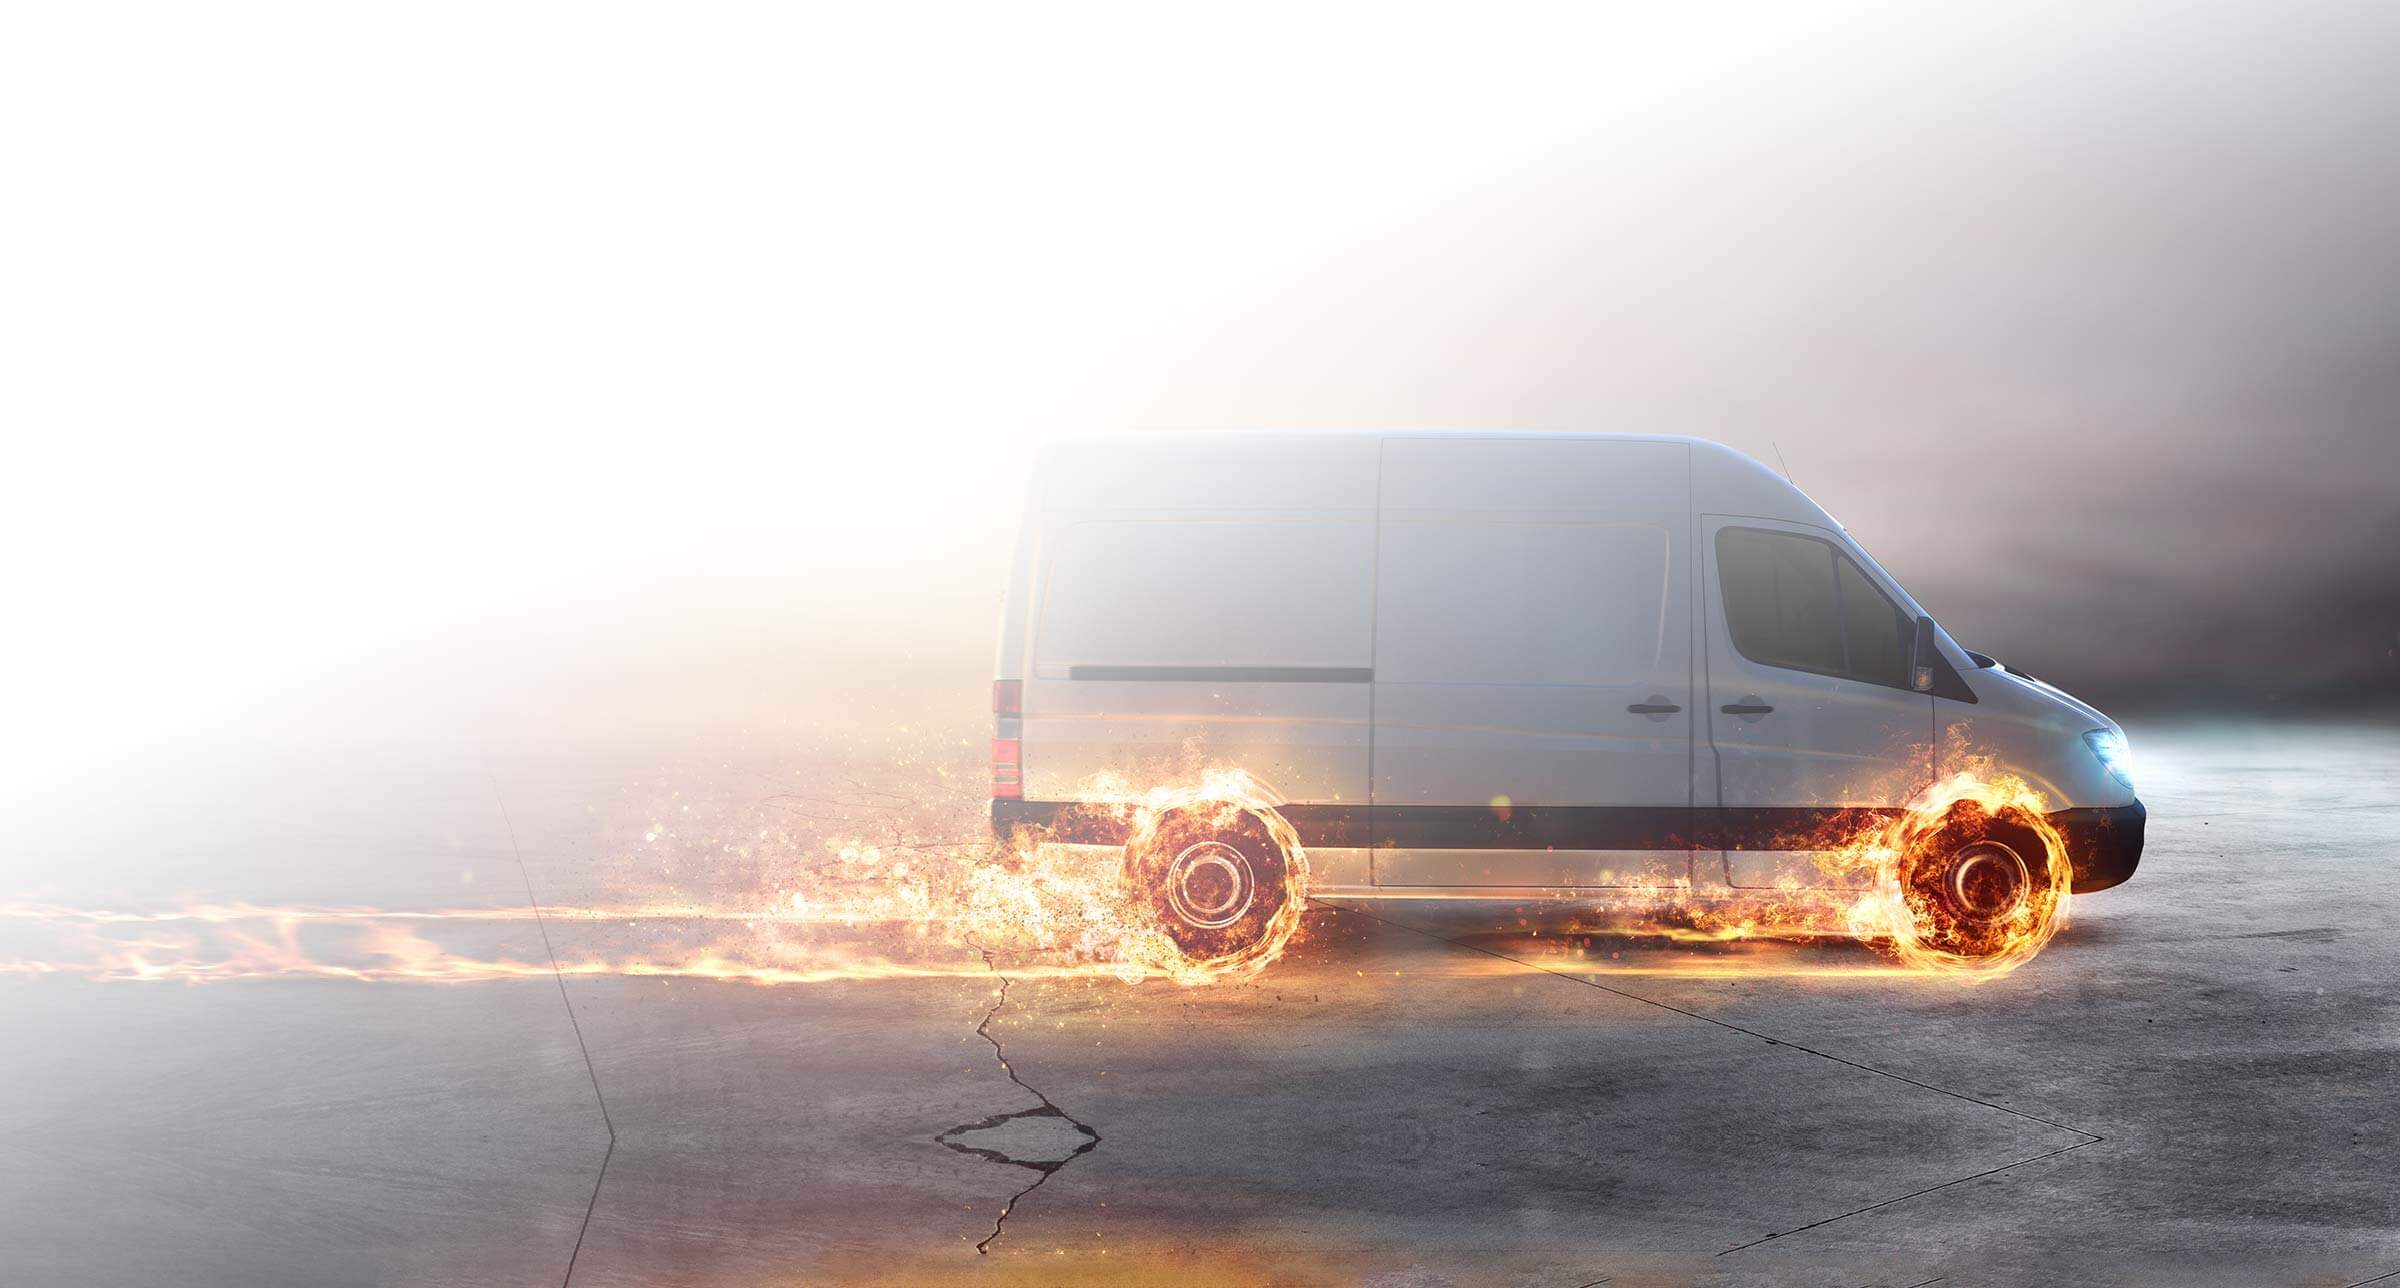 Delivery van with tires on fire image